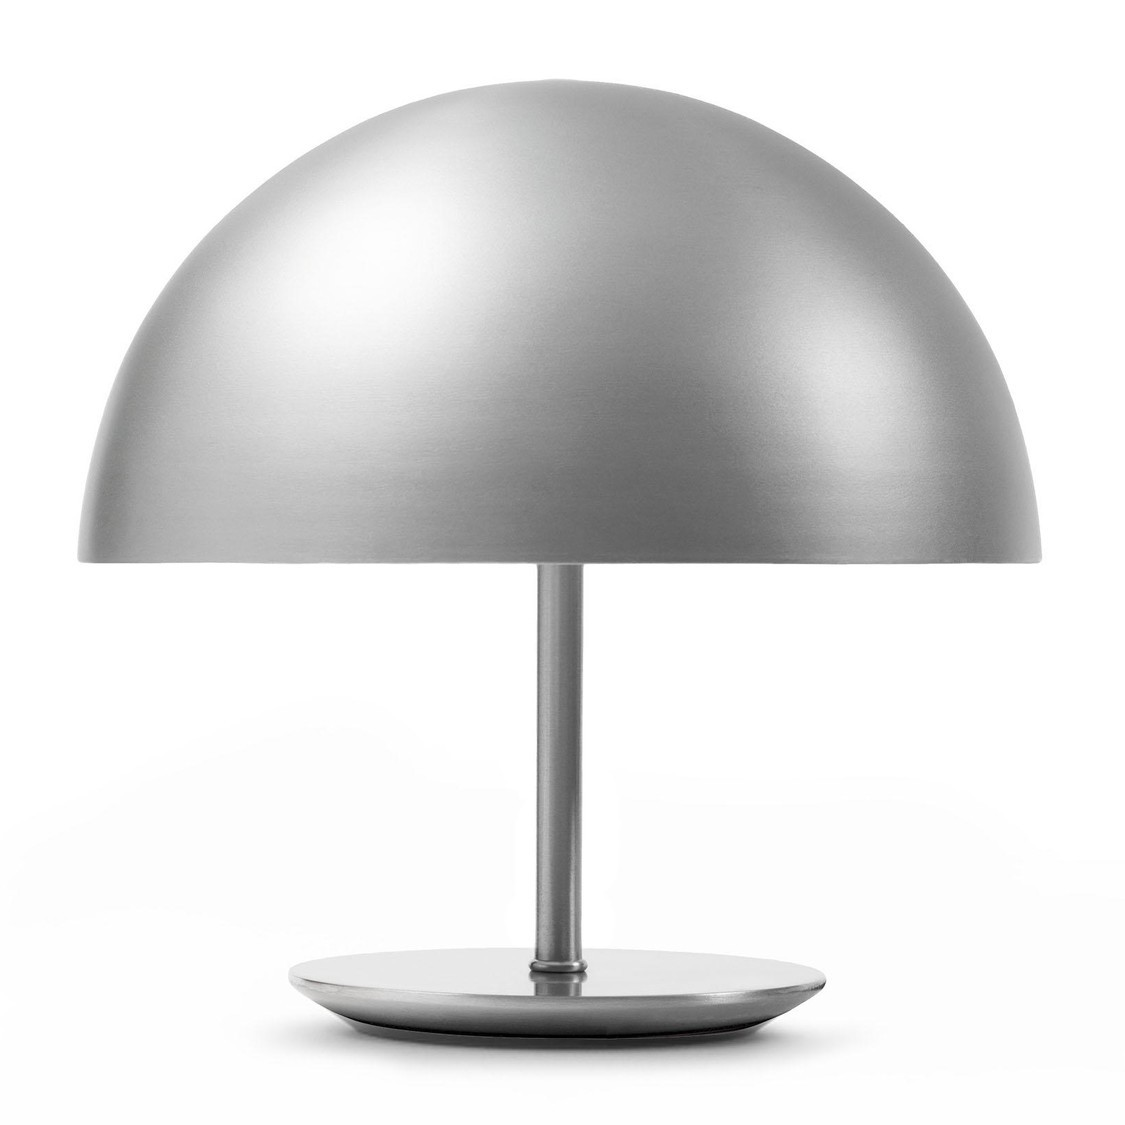 Ordinaire Baby Dome Table Lamp